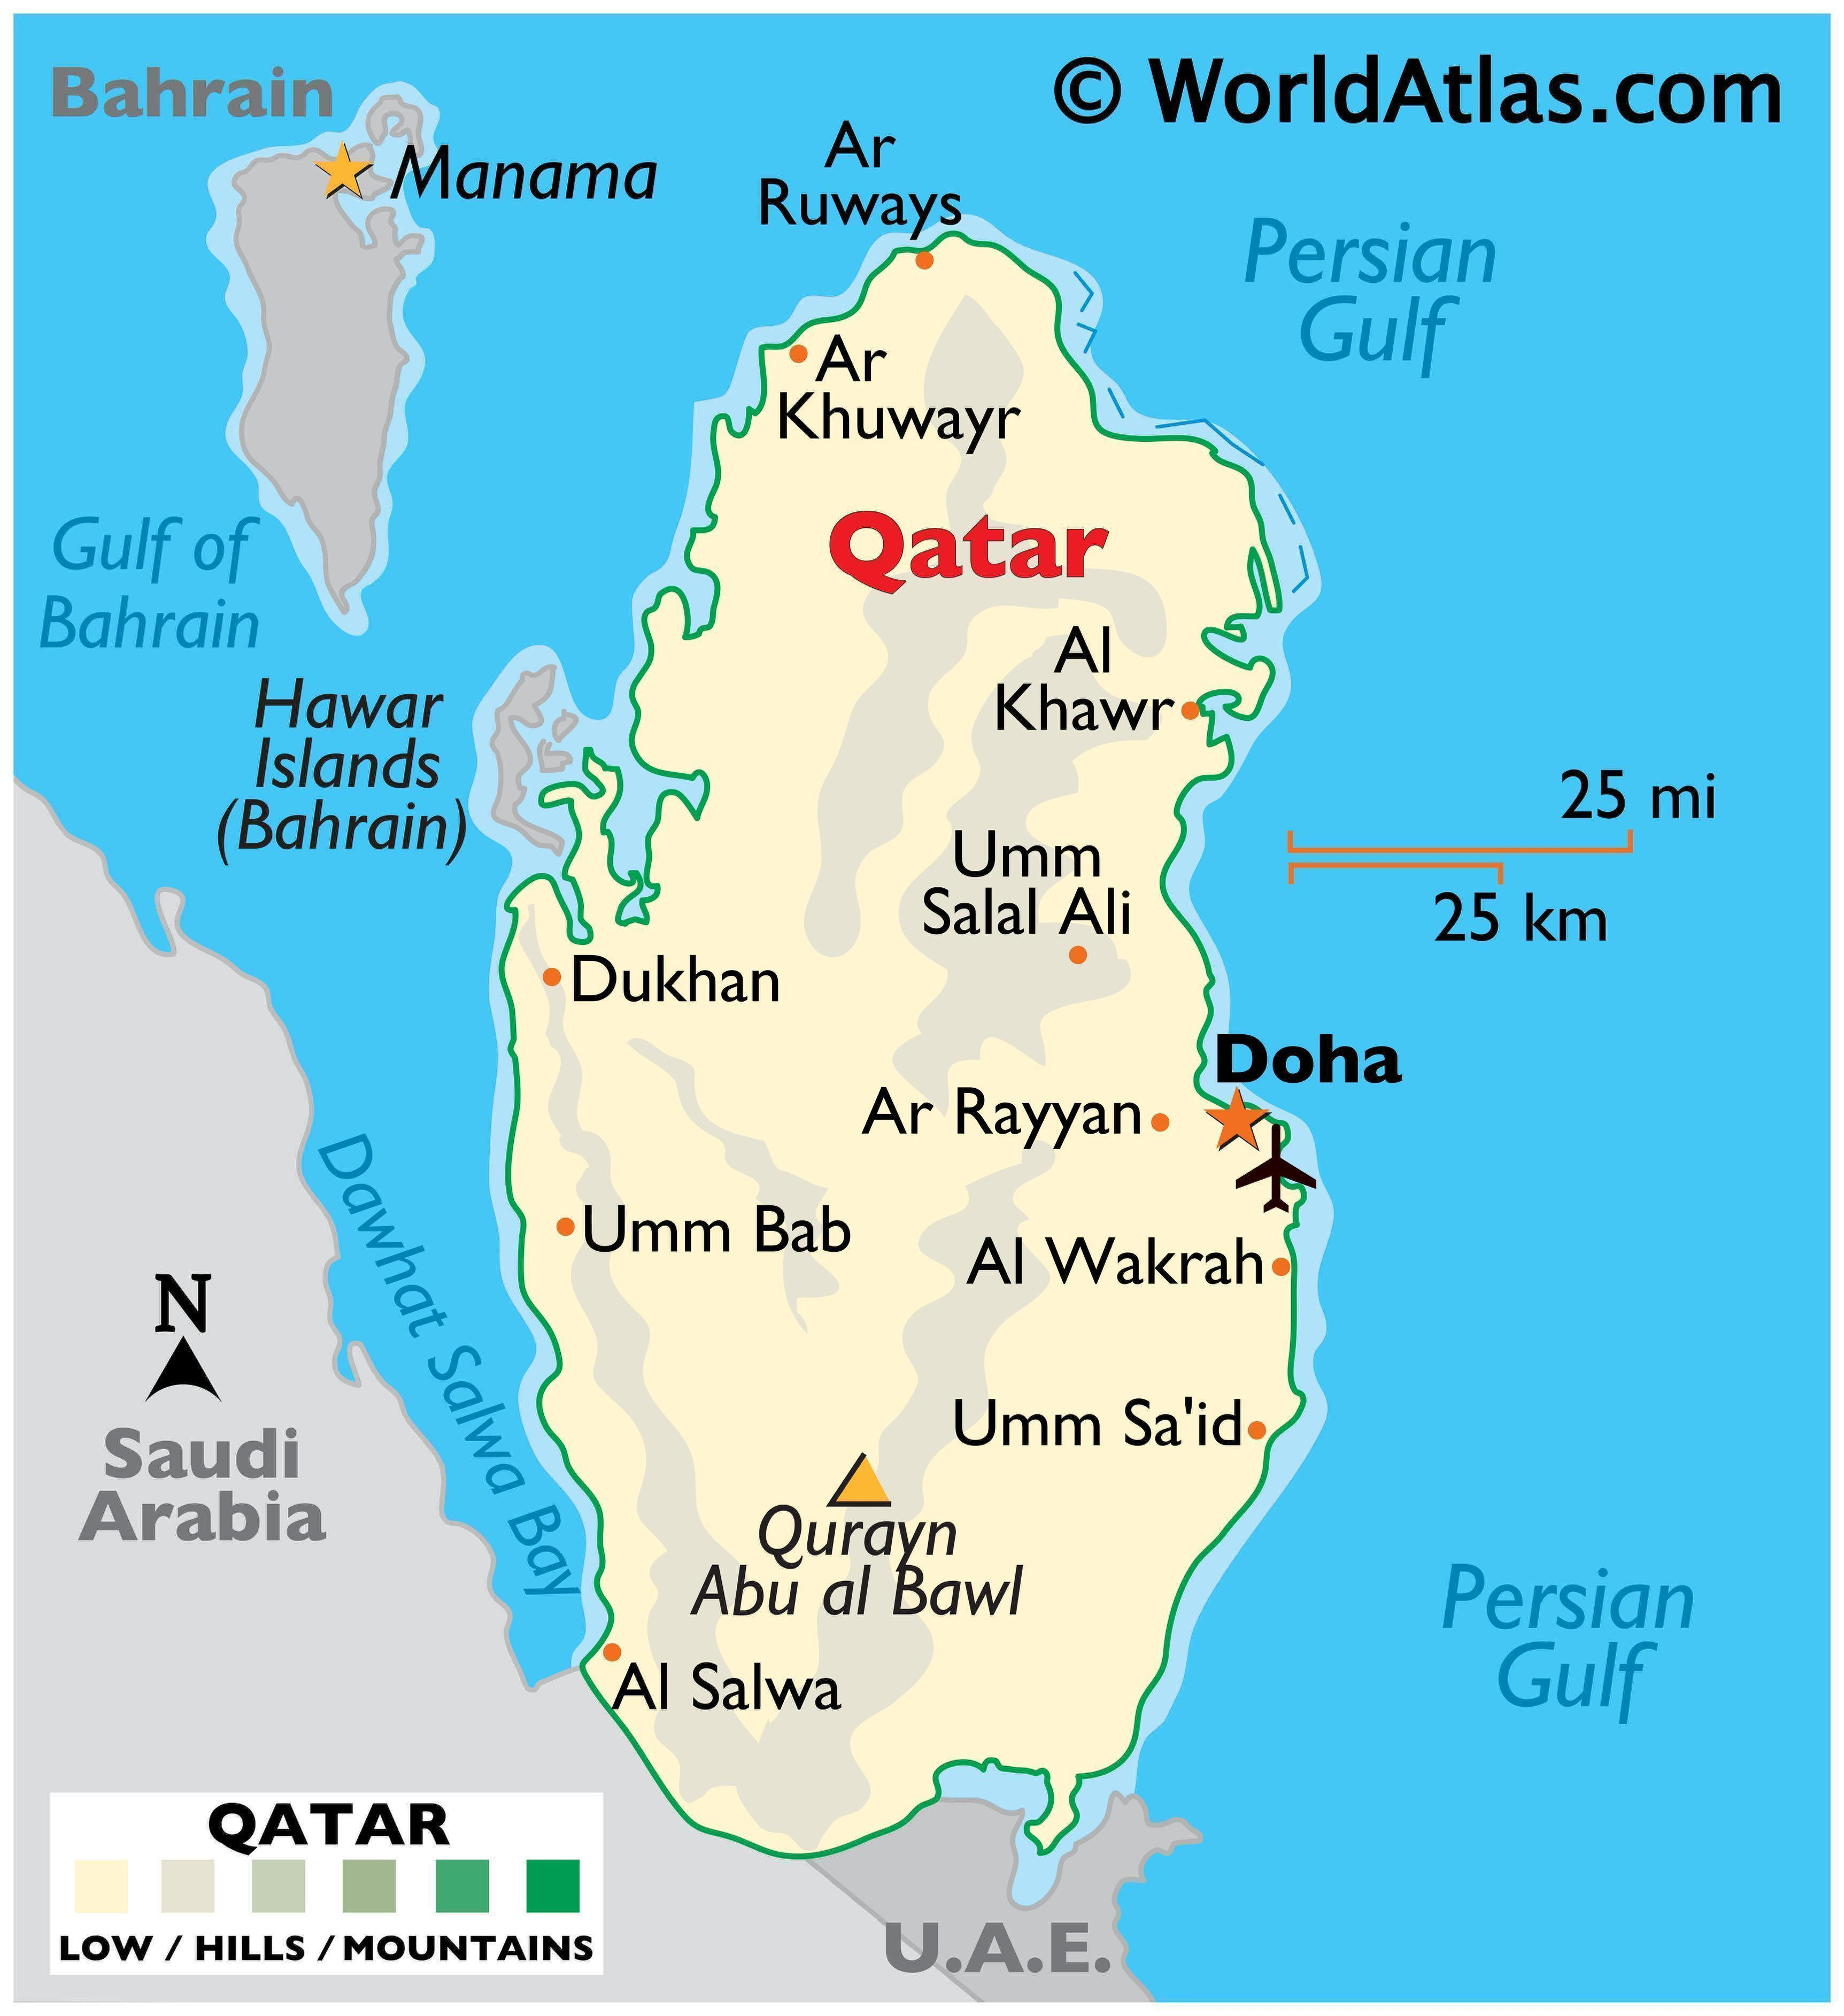 Physical Map of Qatar showing state boundaries, relief, important cities, and the highest point.